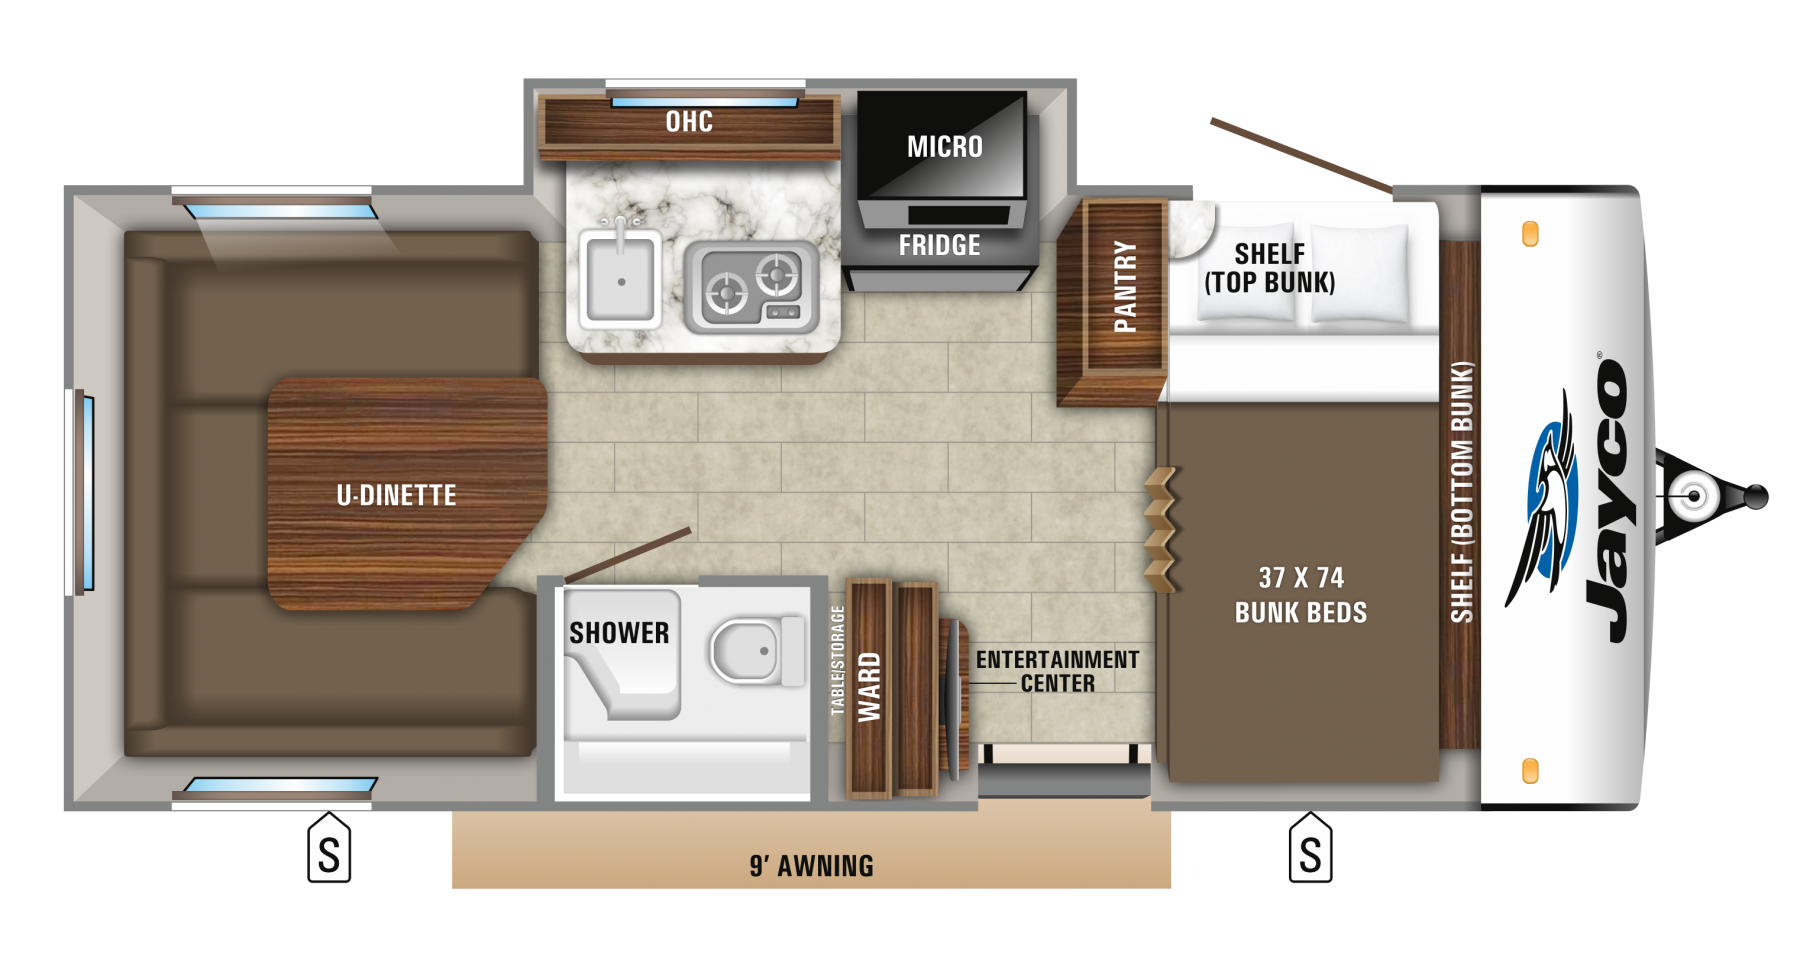 2018 Kodiak Travel Trailers Floor Plans 2019 Jayco Hummingbird Floor Plans Travel Trailers